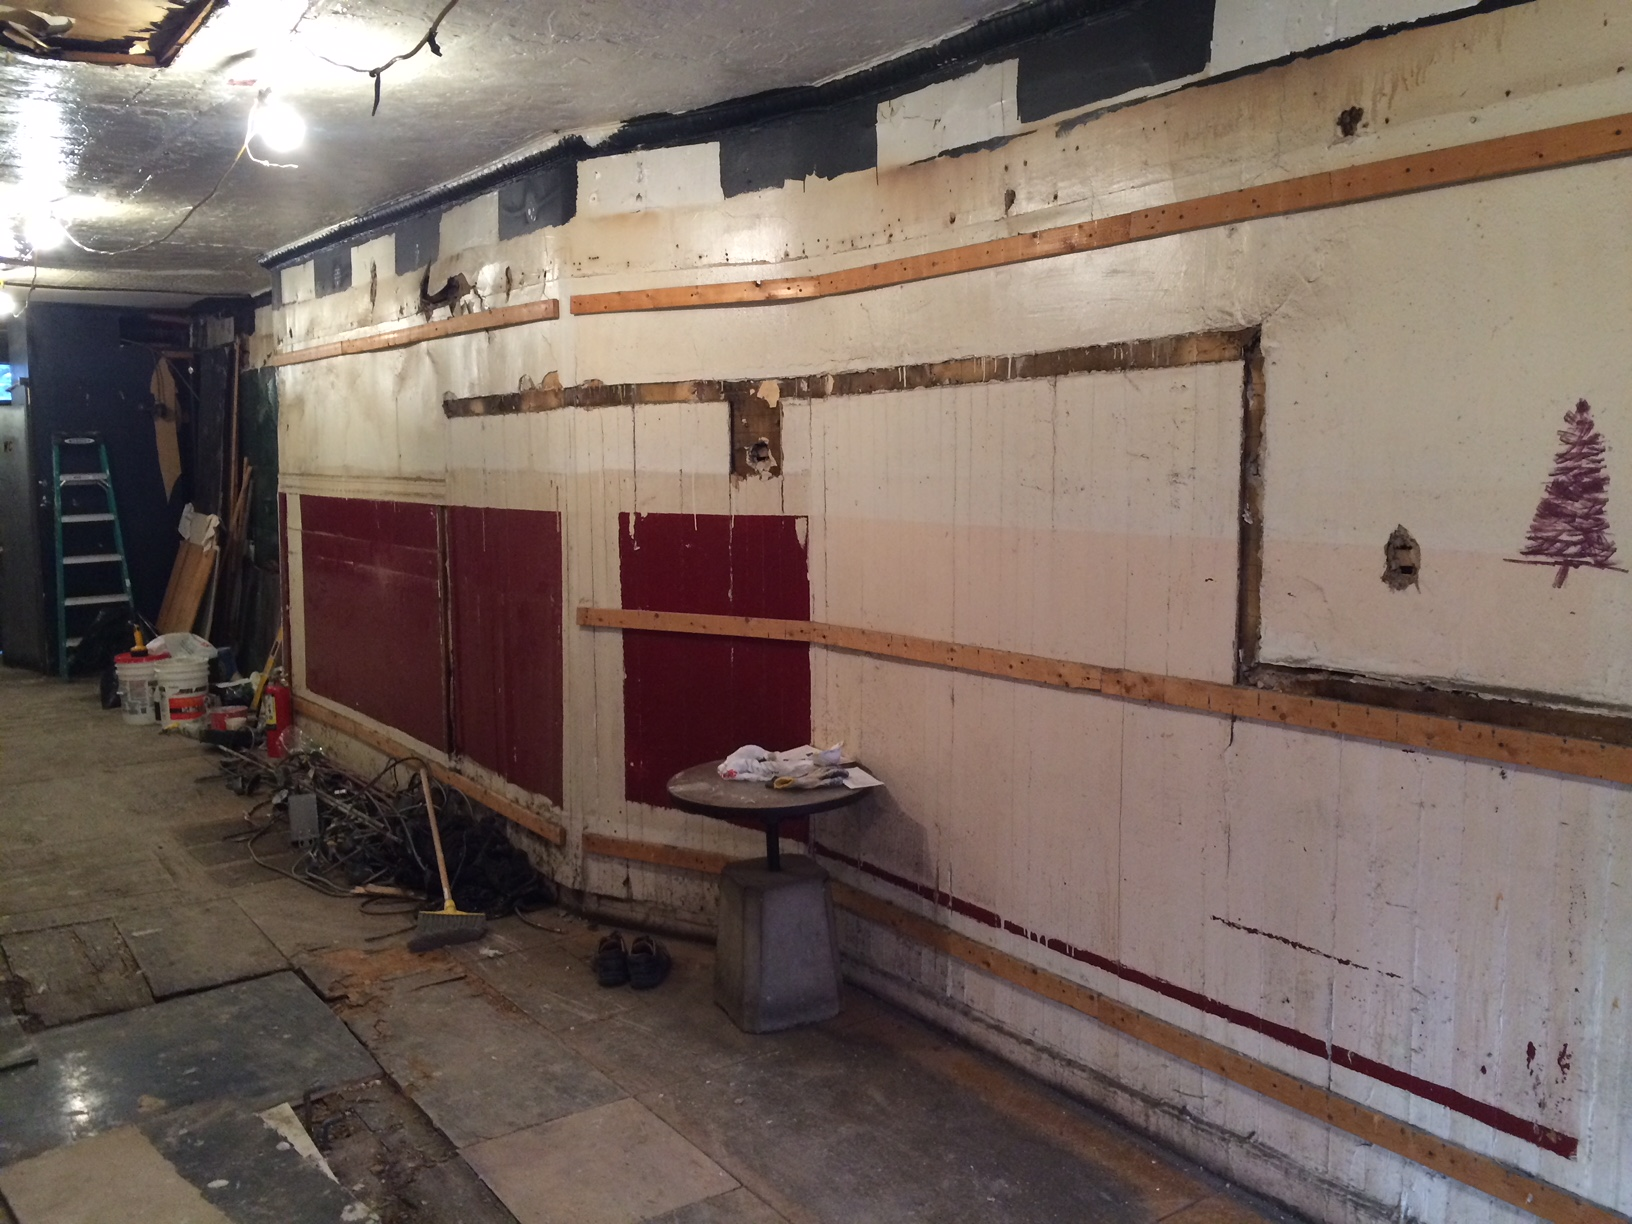 The right/north wall, after the corrugated metal was removed.